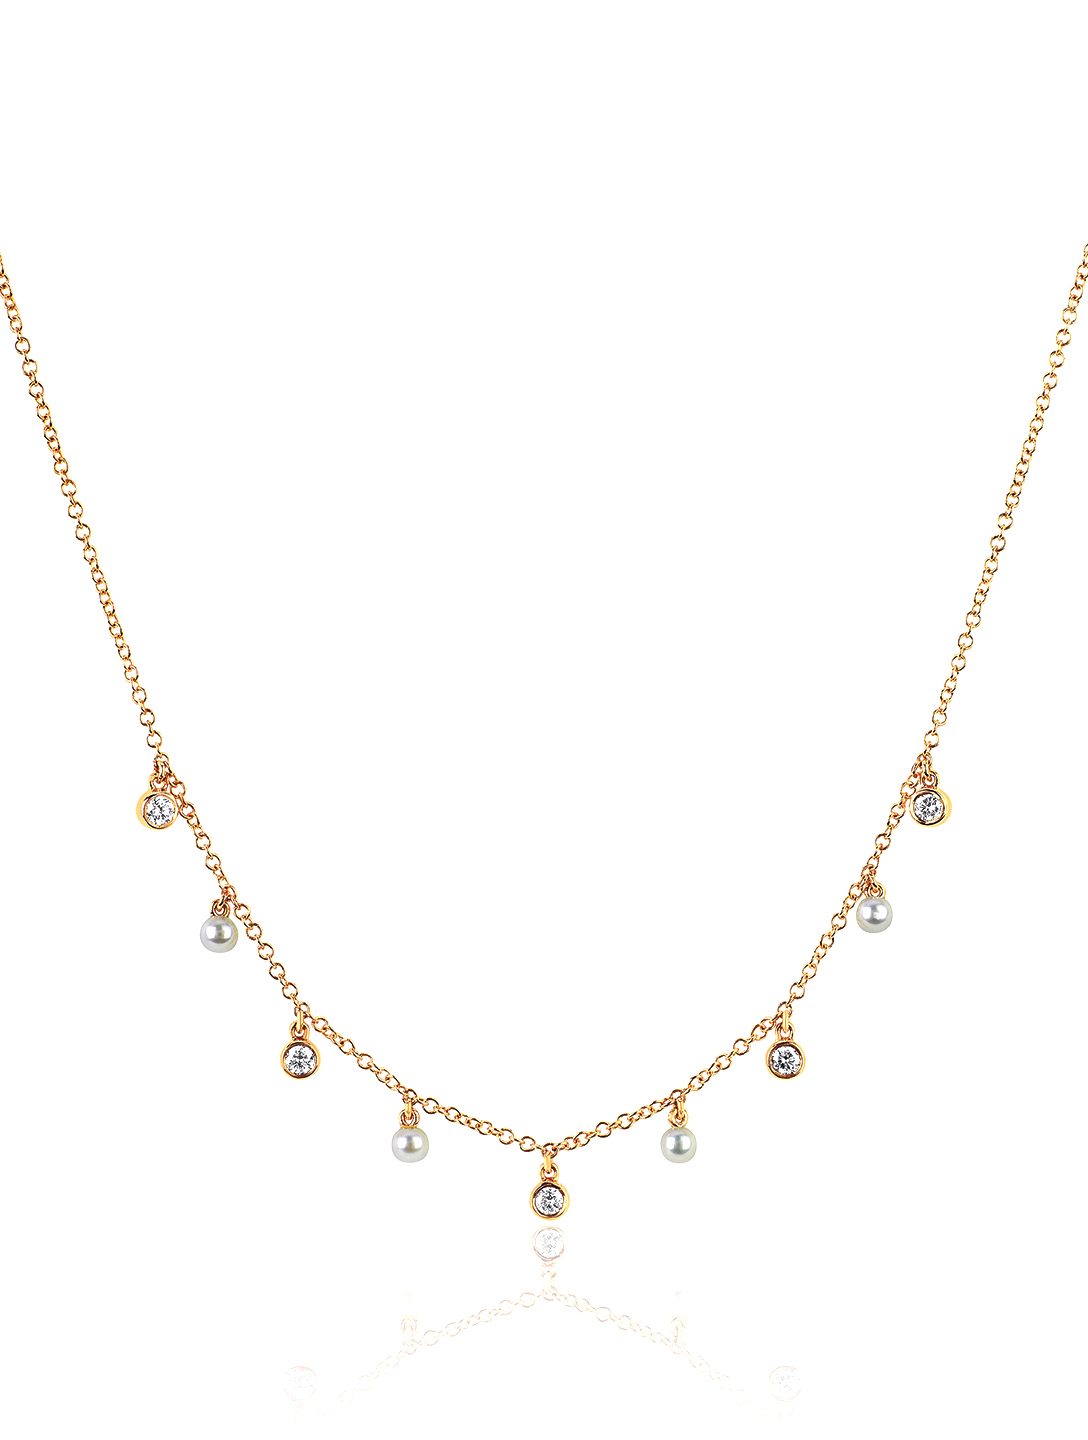 EF COLLECTION 14K Gold Diamond Bezel Necklace With Pearls And Diamonds Women's Metallic